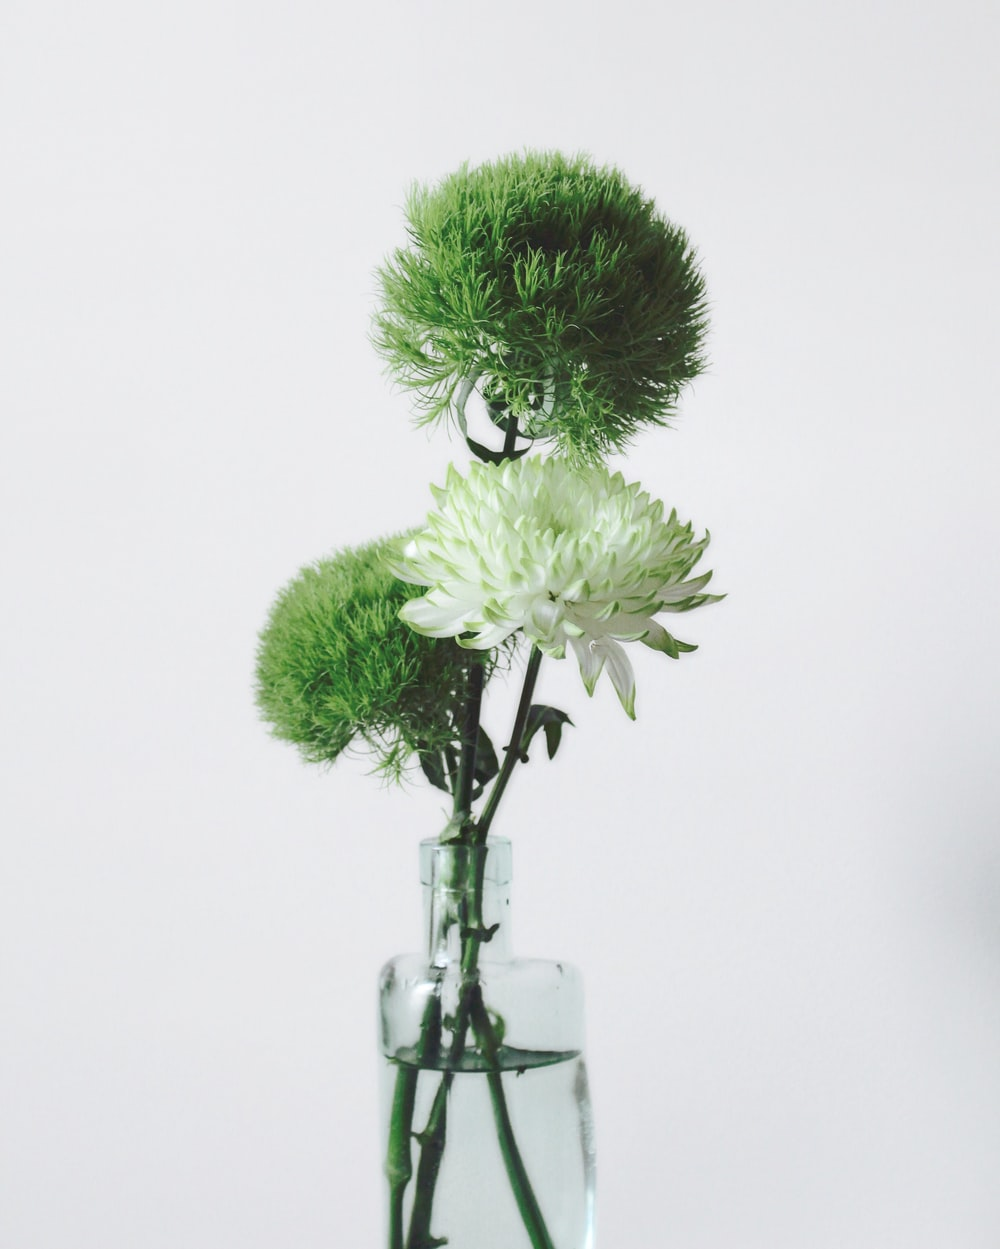 green and white flowers in vase